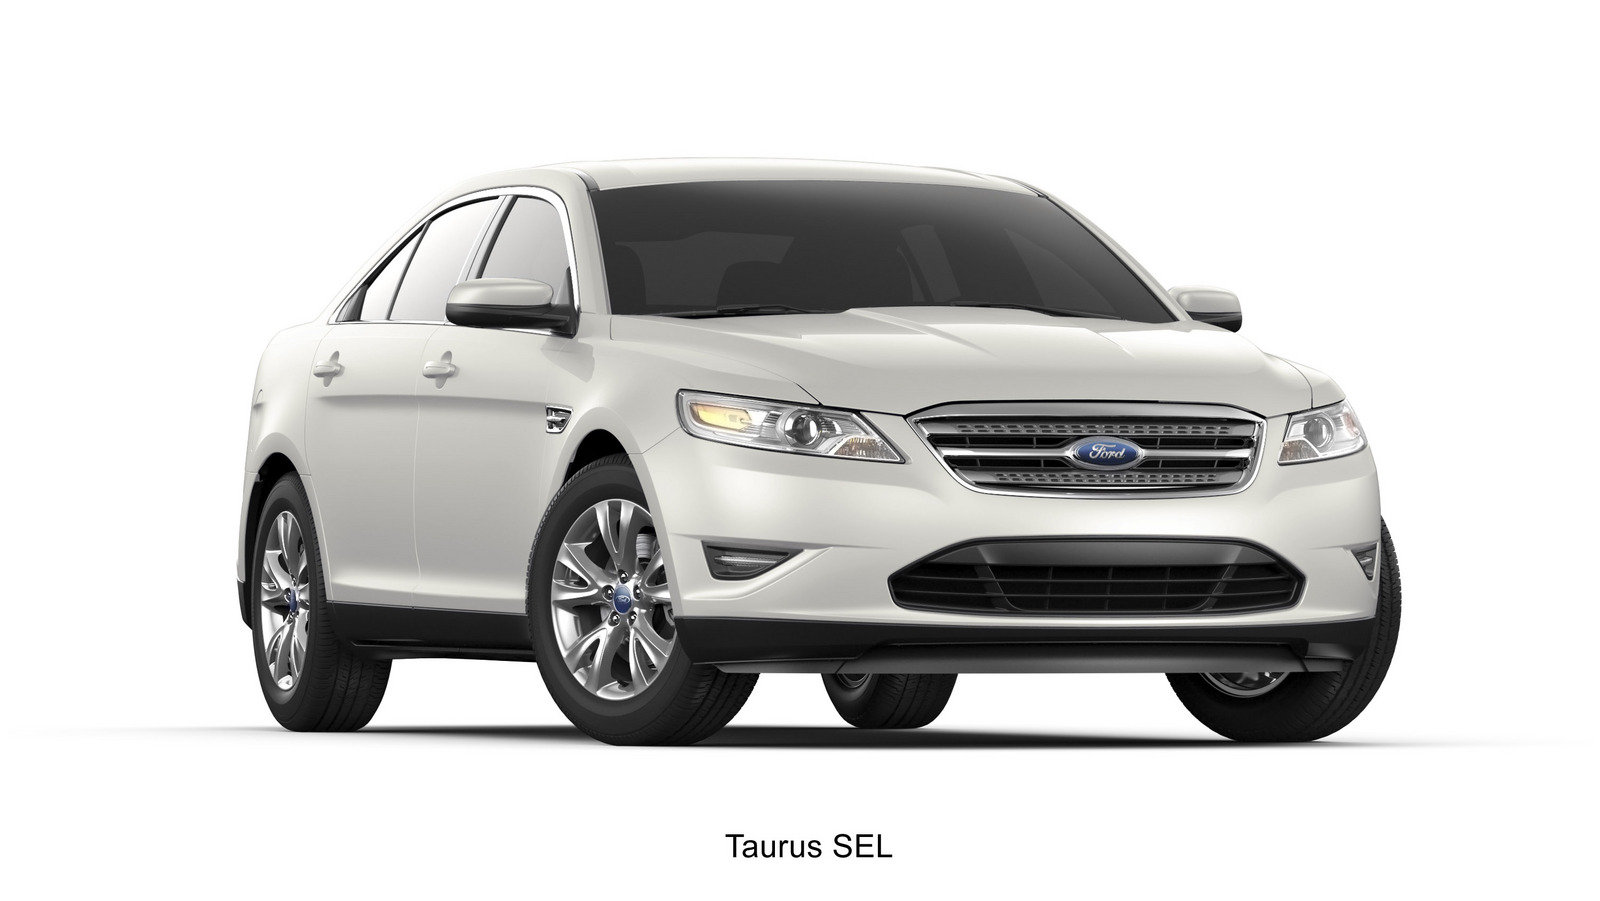 2010 ford taurus sho picture 306617 car review top speed. Black Bedroom Furniture Sets. Home Design Ideas